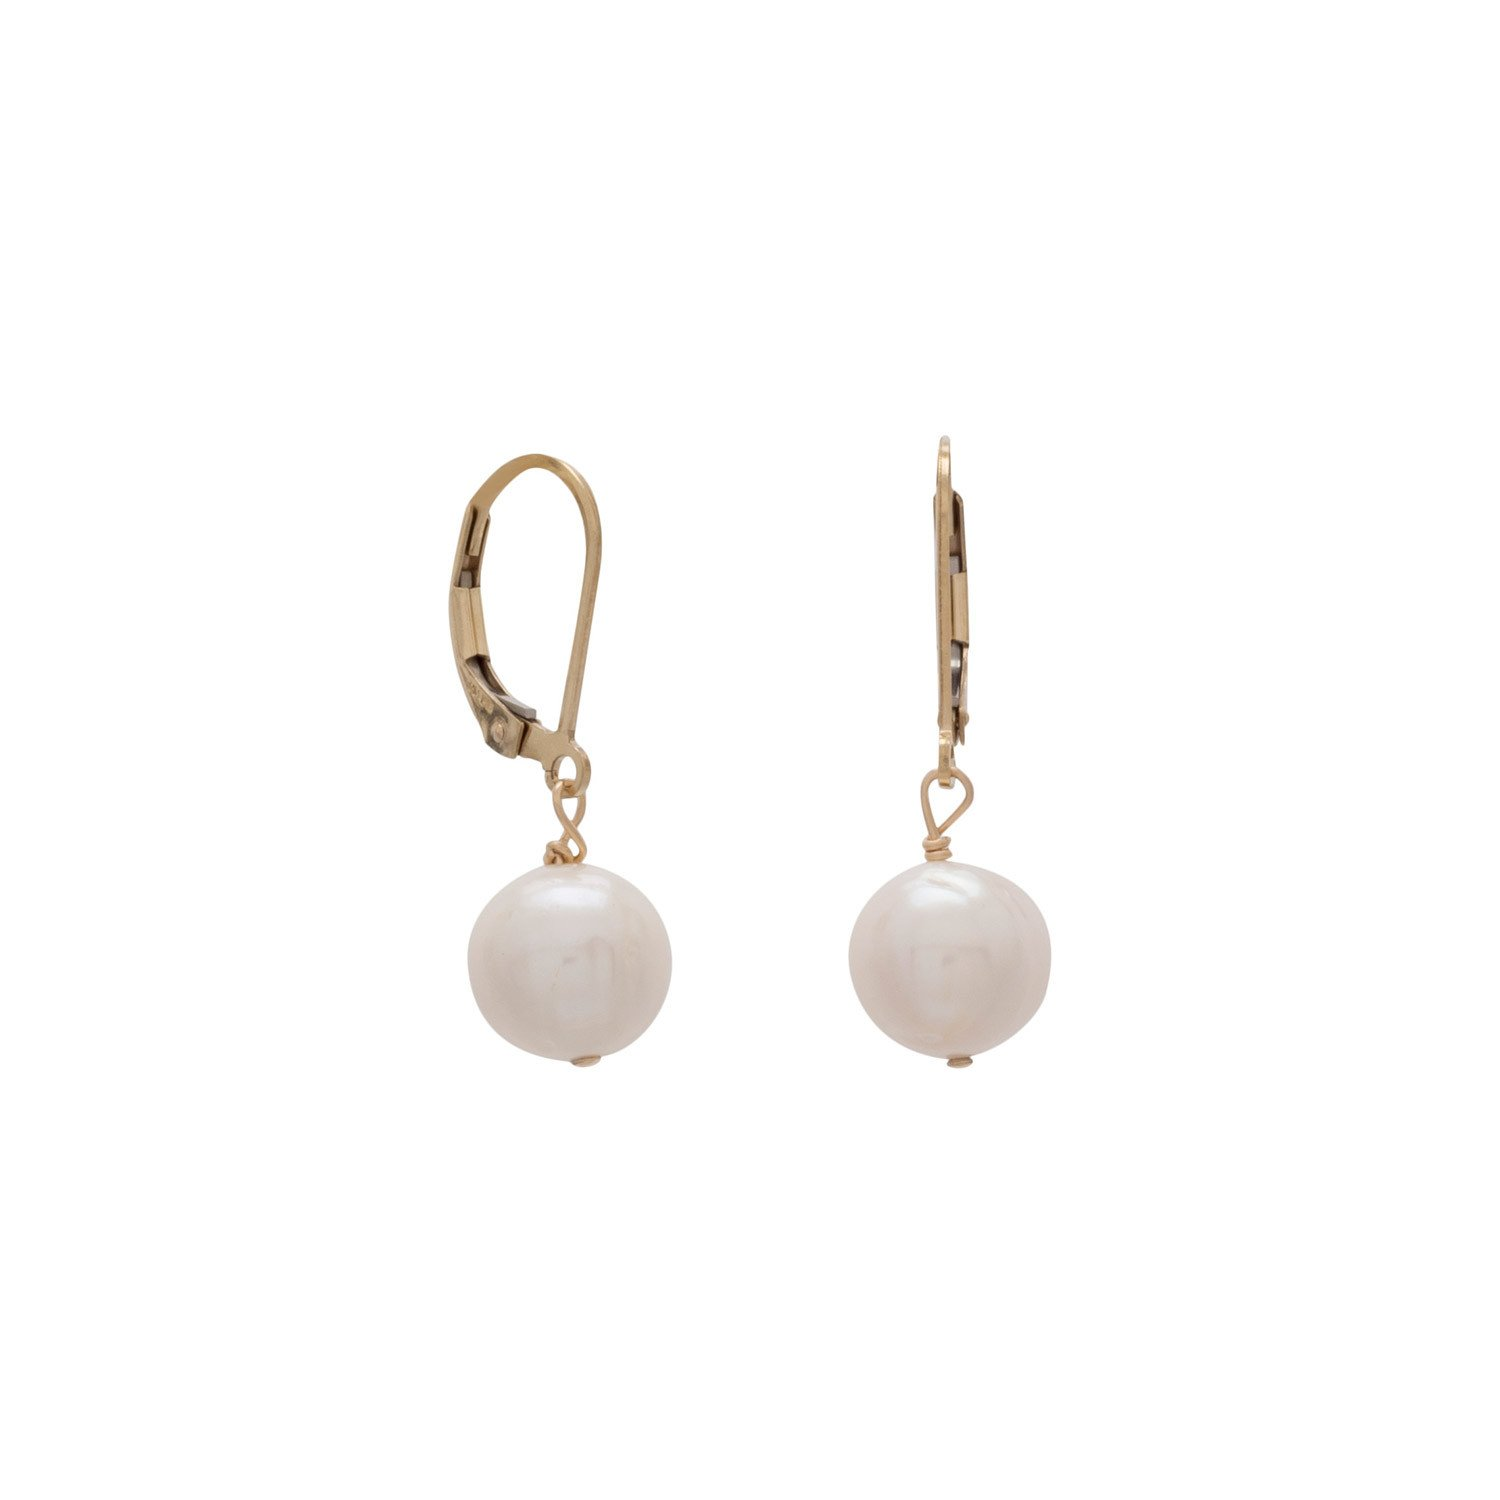 Cultured Freshwater Pearl 14/20 Gold Filled Lever Earrings